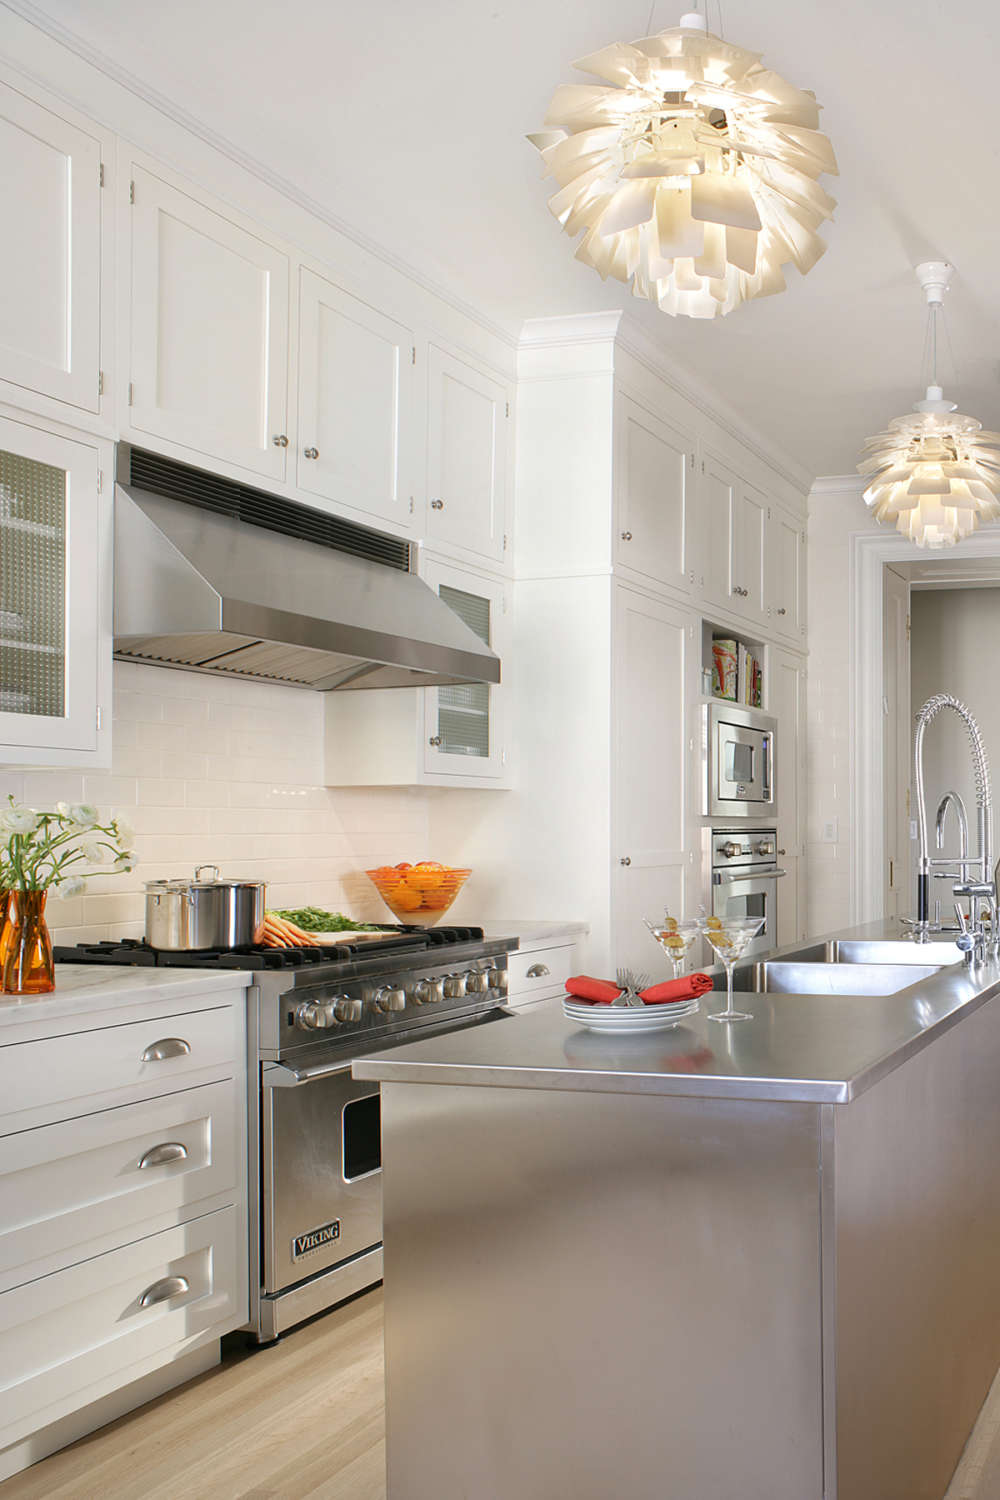 Transitional galley kitchen features white painted, shaker style, double stacked handcrafted cabinets by Rutt with Bendheim glass inserts, and stainless steel island with countertop. White modern flower pendant lights accent the room. Design by Randy O'Kane, CKD, of Bilotta Kitchens.